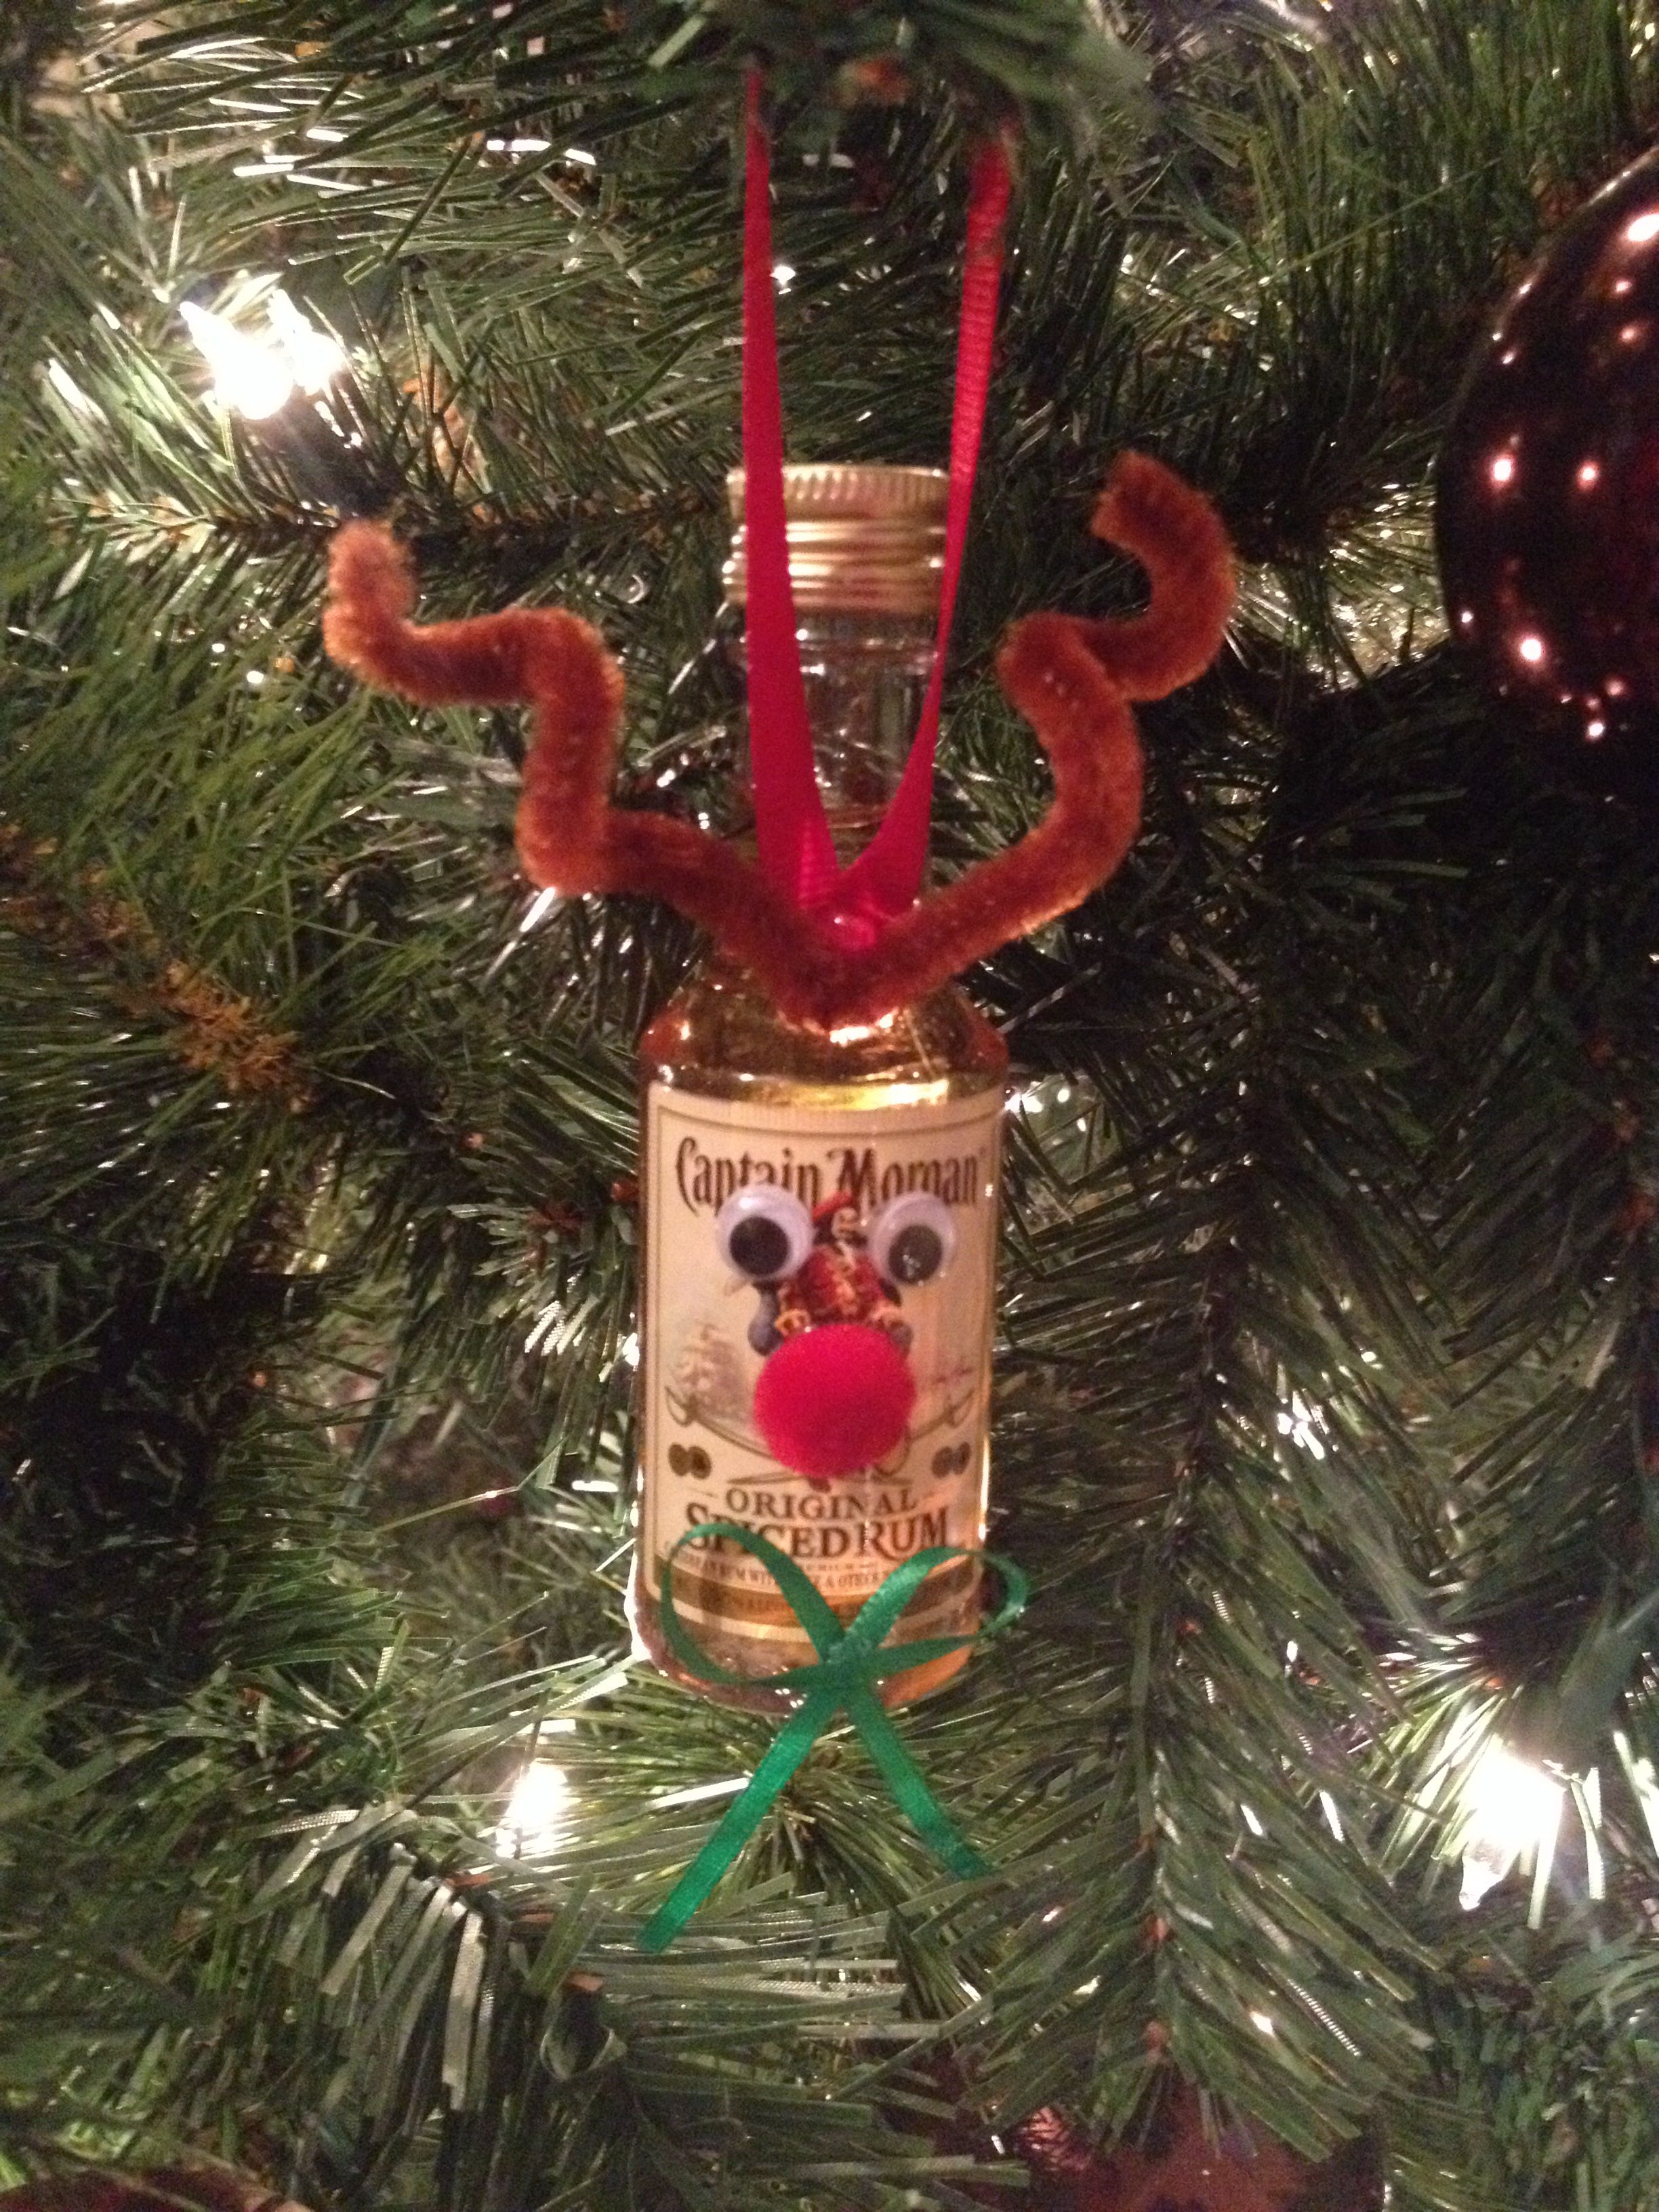 Homemade Reindeer Christmas Ornament. Liquor mini ornament. Christmas ornament swap #coworkerchristmasgiftideas